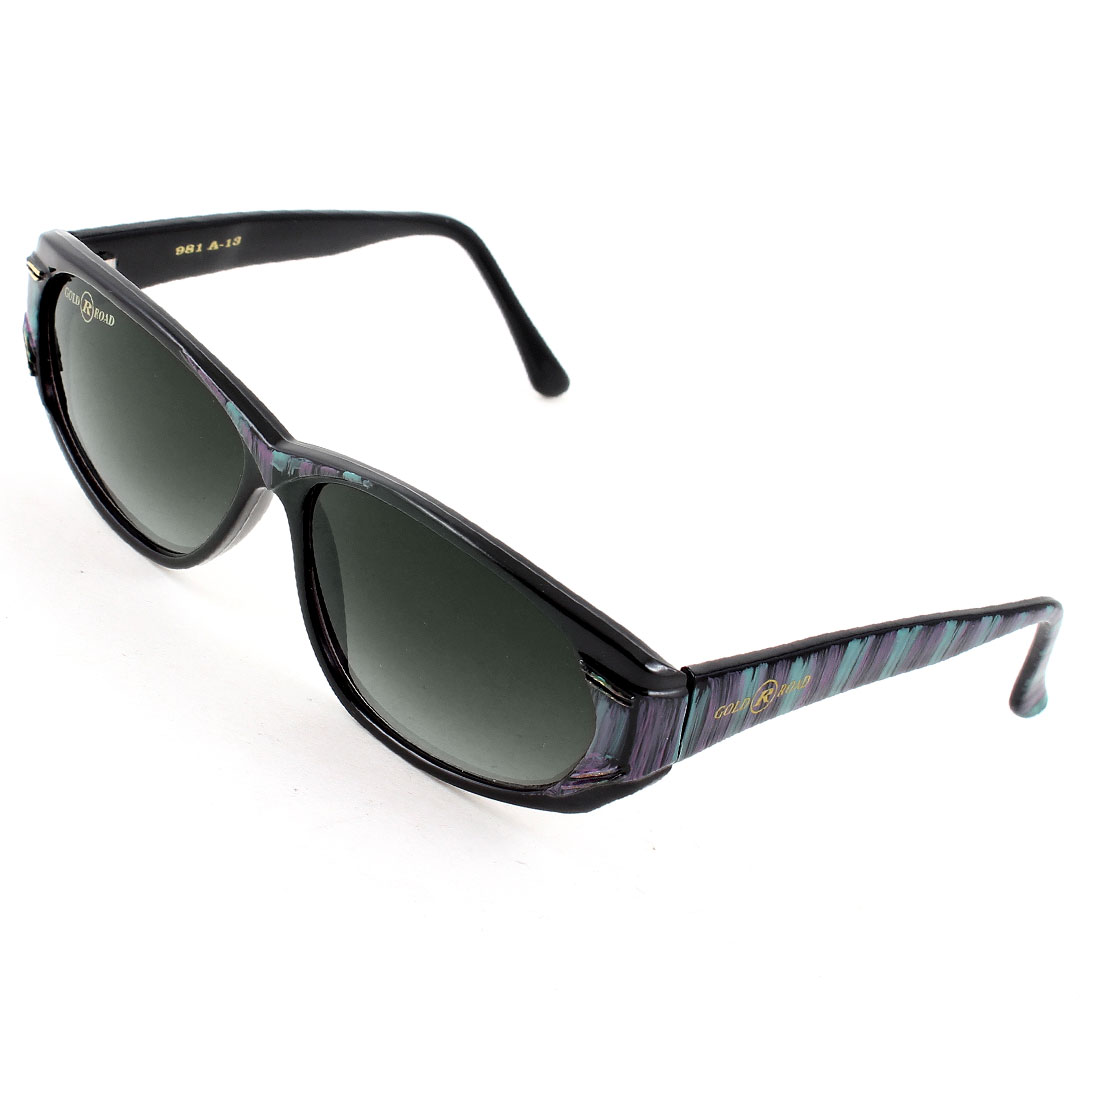 Woman Lady Single Bridge Green Purple Striped Arms Black Lens Sunglasses Glasses